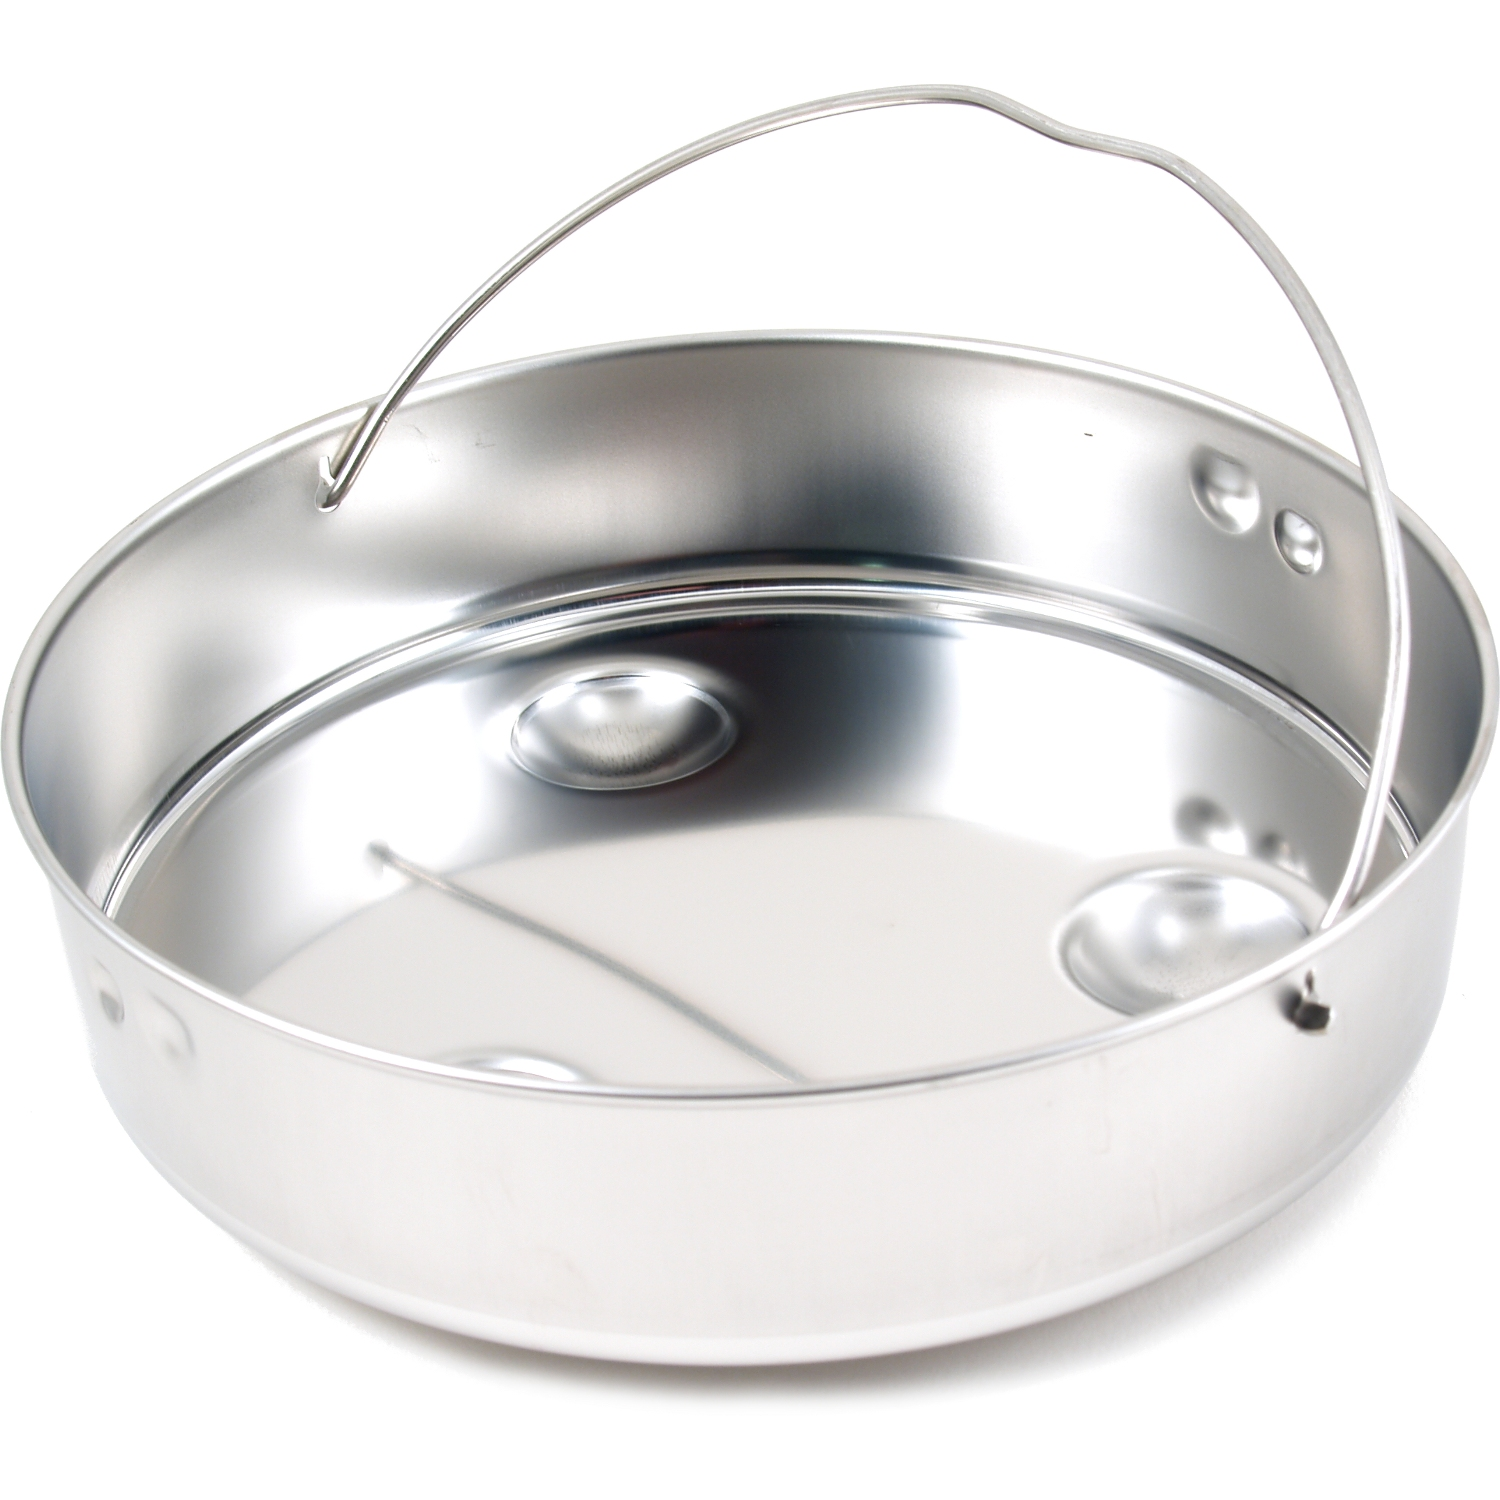 WMF Perfect Plus Solid Stainless Steel Insert for 4.5 Quart, 6.5 Quart, and 8.5 Quart Pressure Cookers